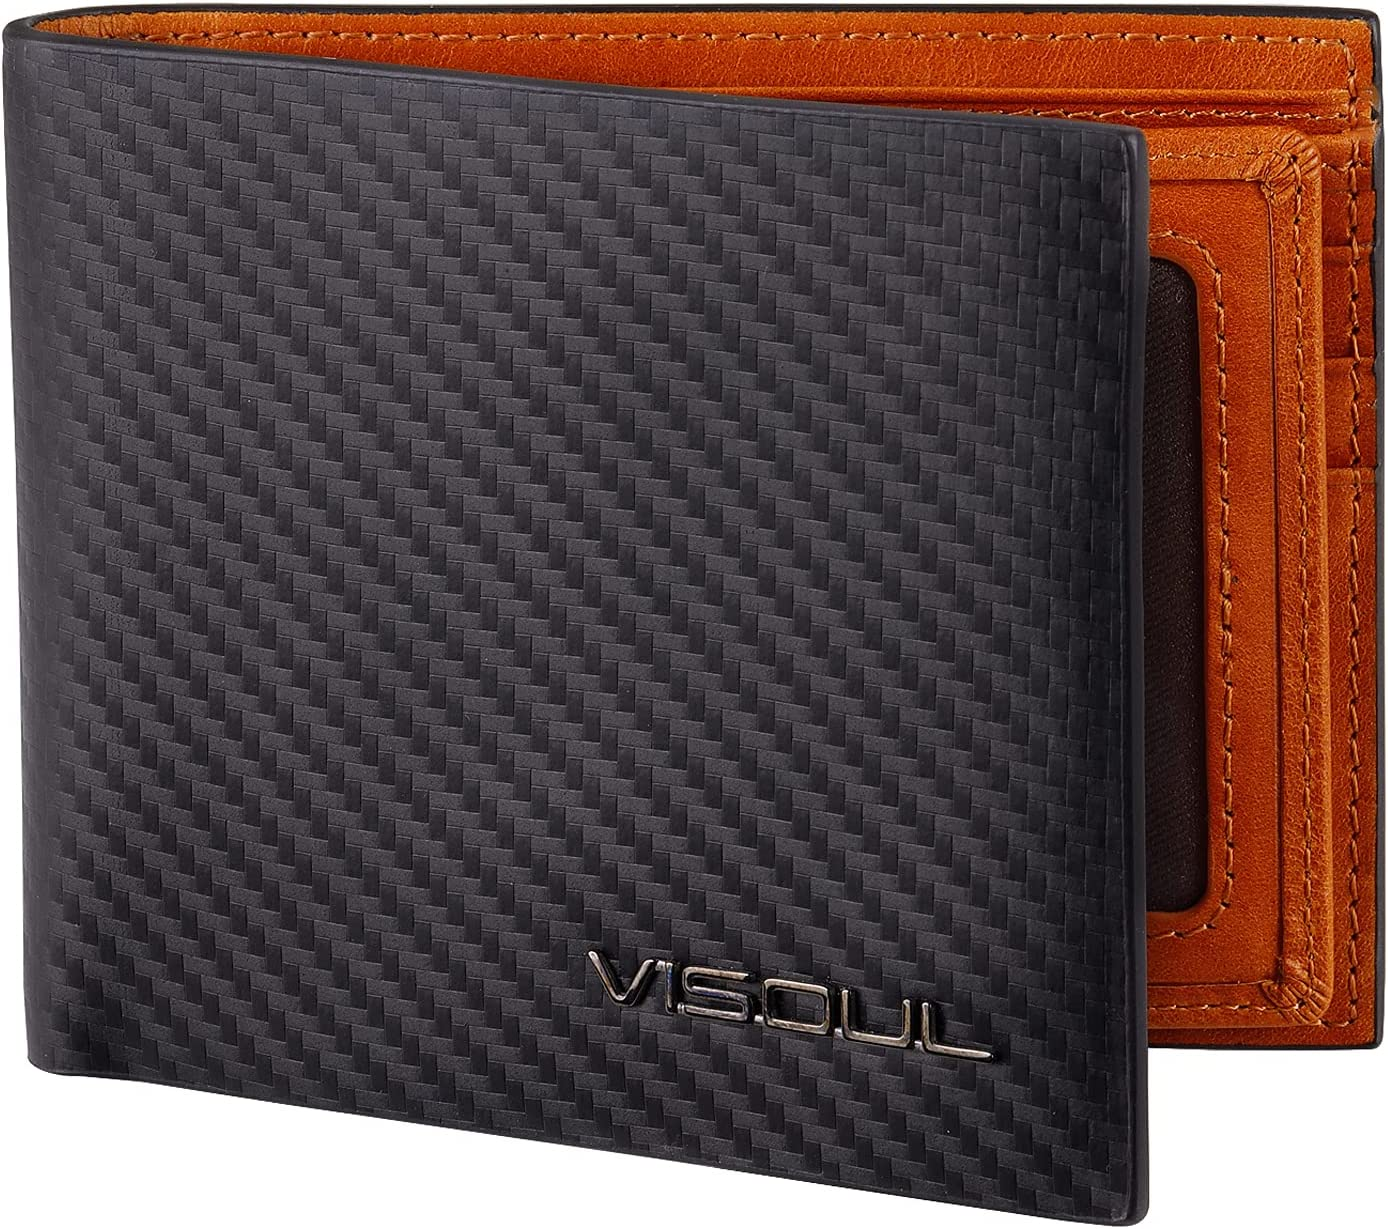 VISOUL Mens Carbon Fiber Leather Bifold Wallet with 2 ID Windows, RFID Blocking Stylish Wallet for Men with 2 Cash Compartments (Black+Orange)